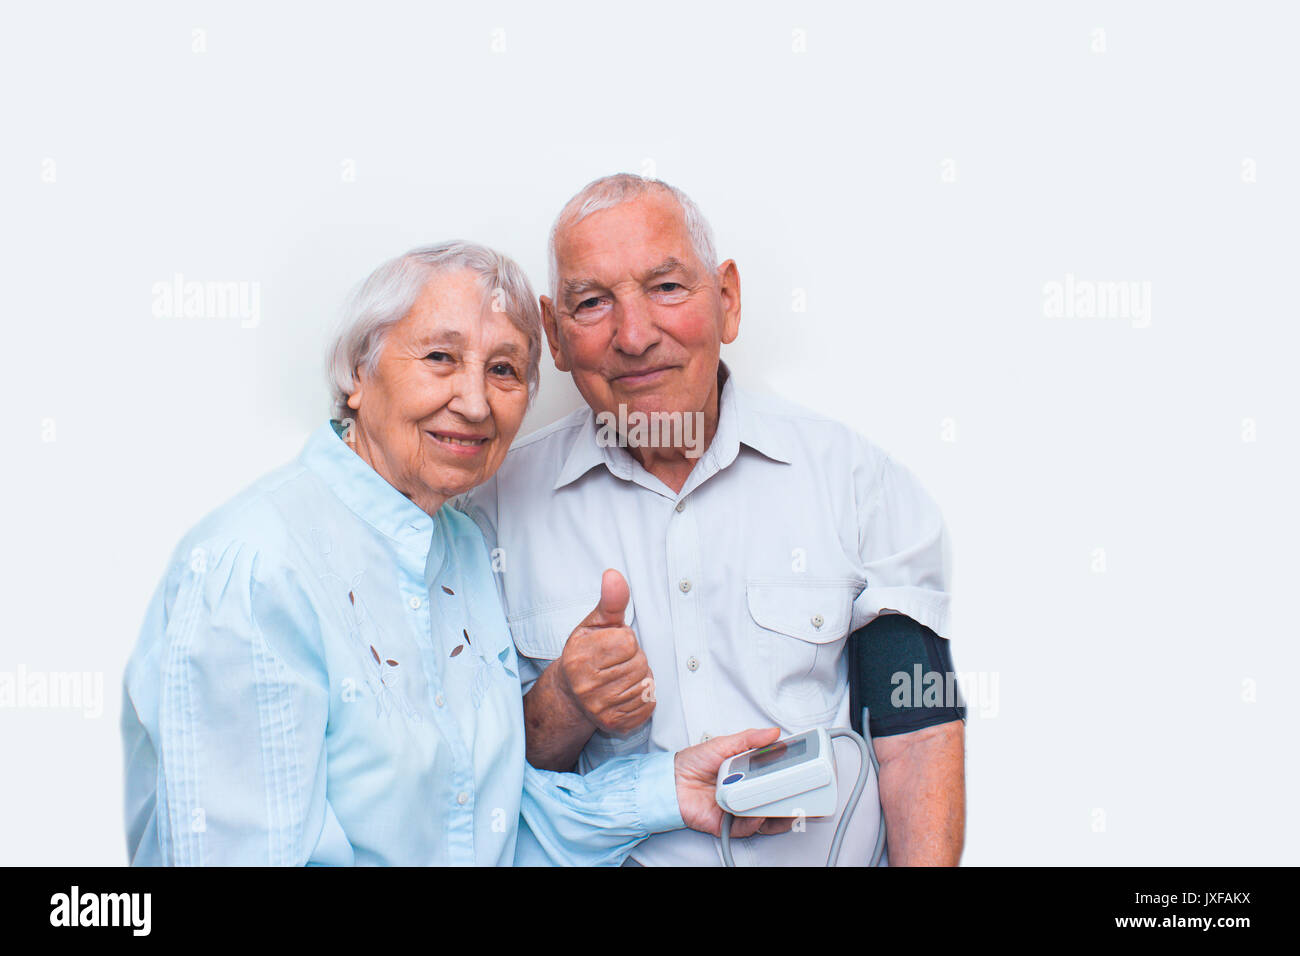 Apparatus measuring the pressure in the hands of an elderly woman. - Stock Image